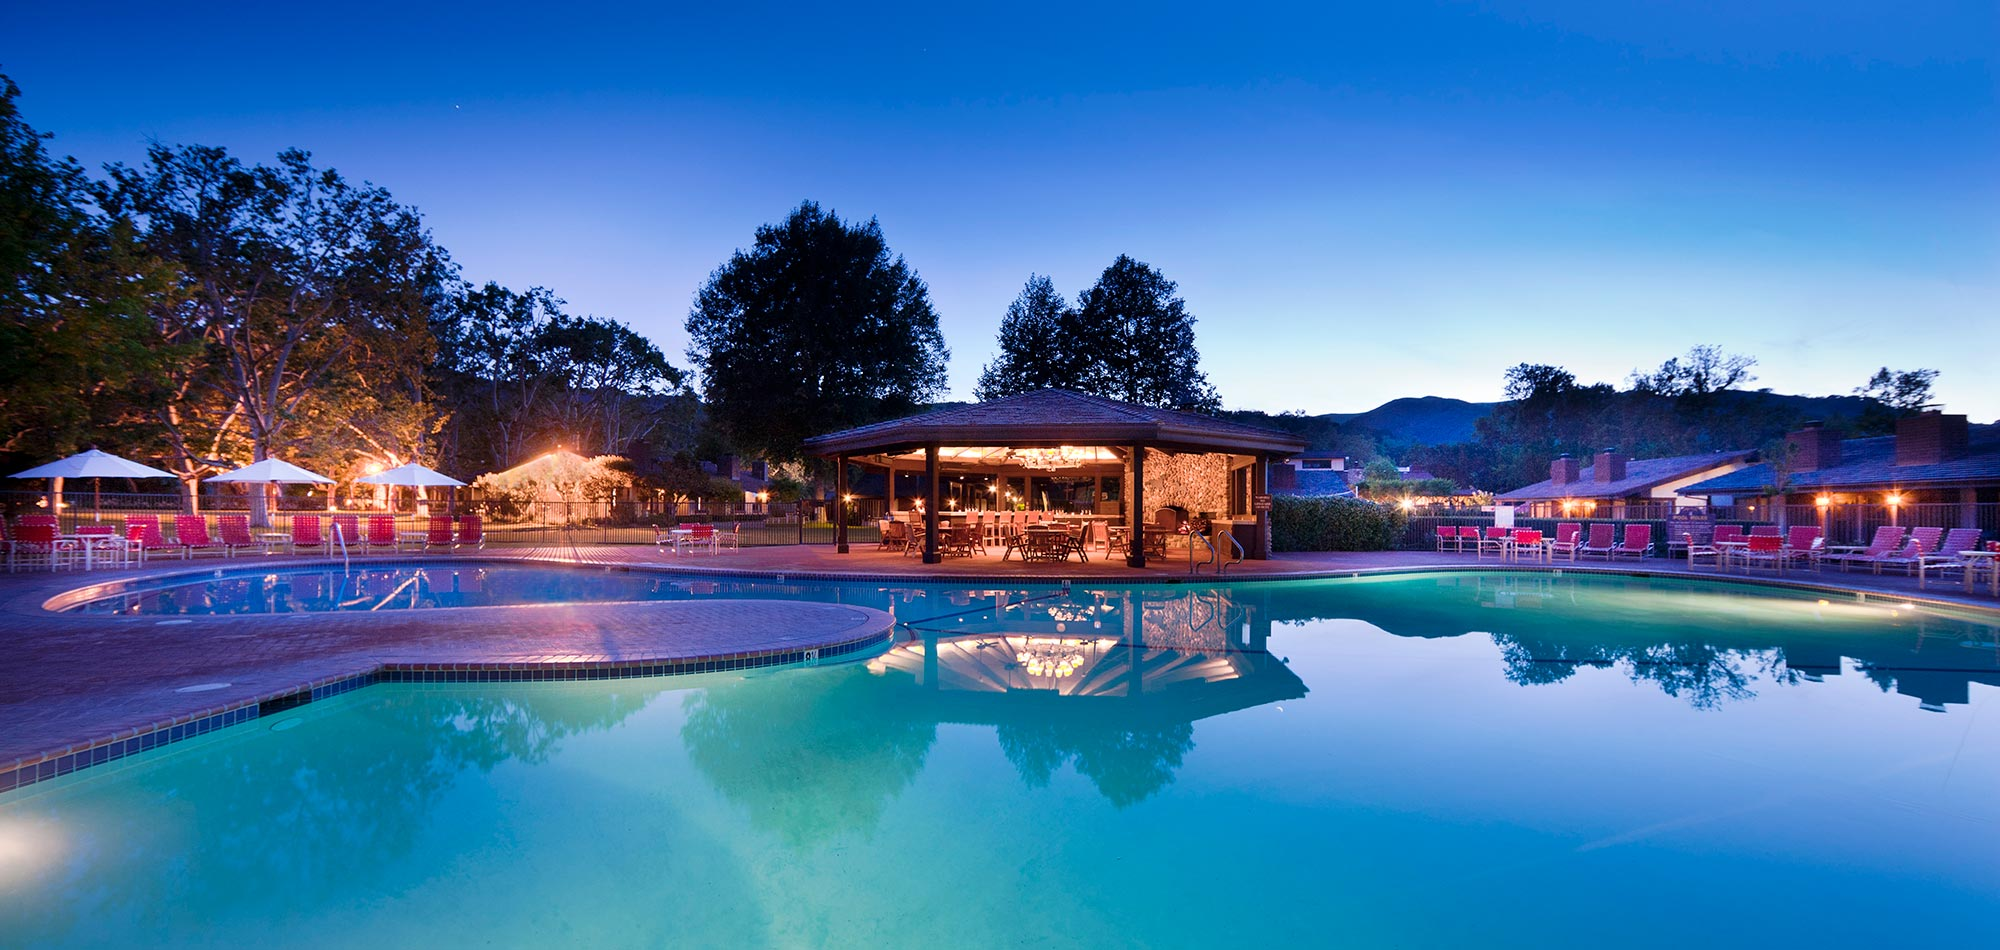 The pool at the Alisal Guest Ranch & Resort in Solvang, California